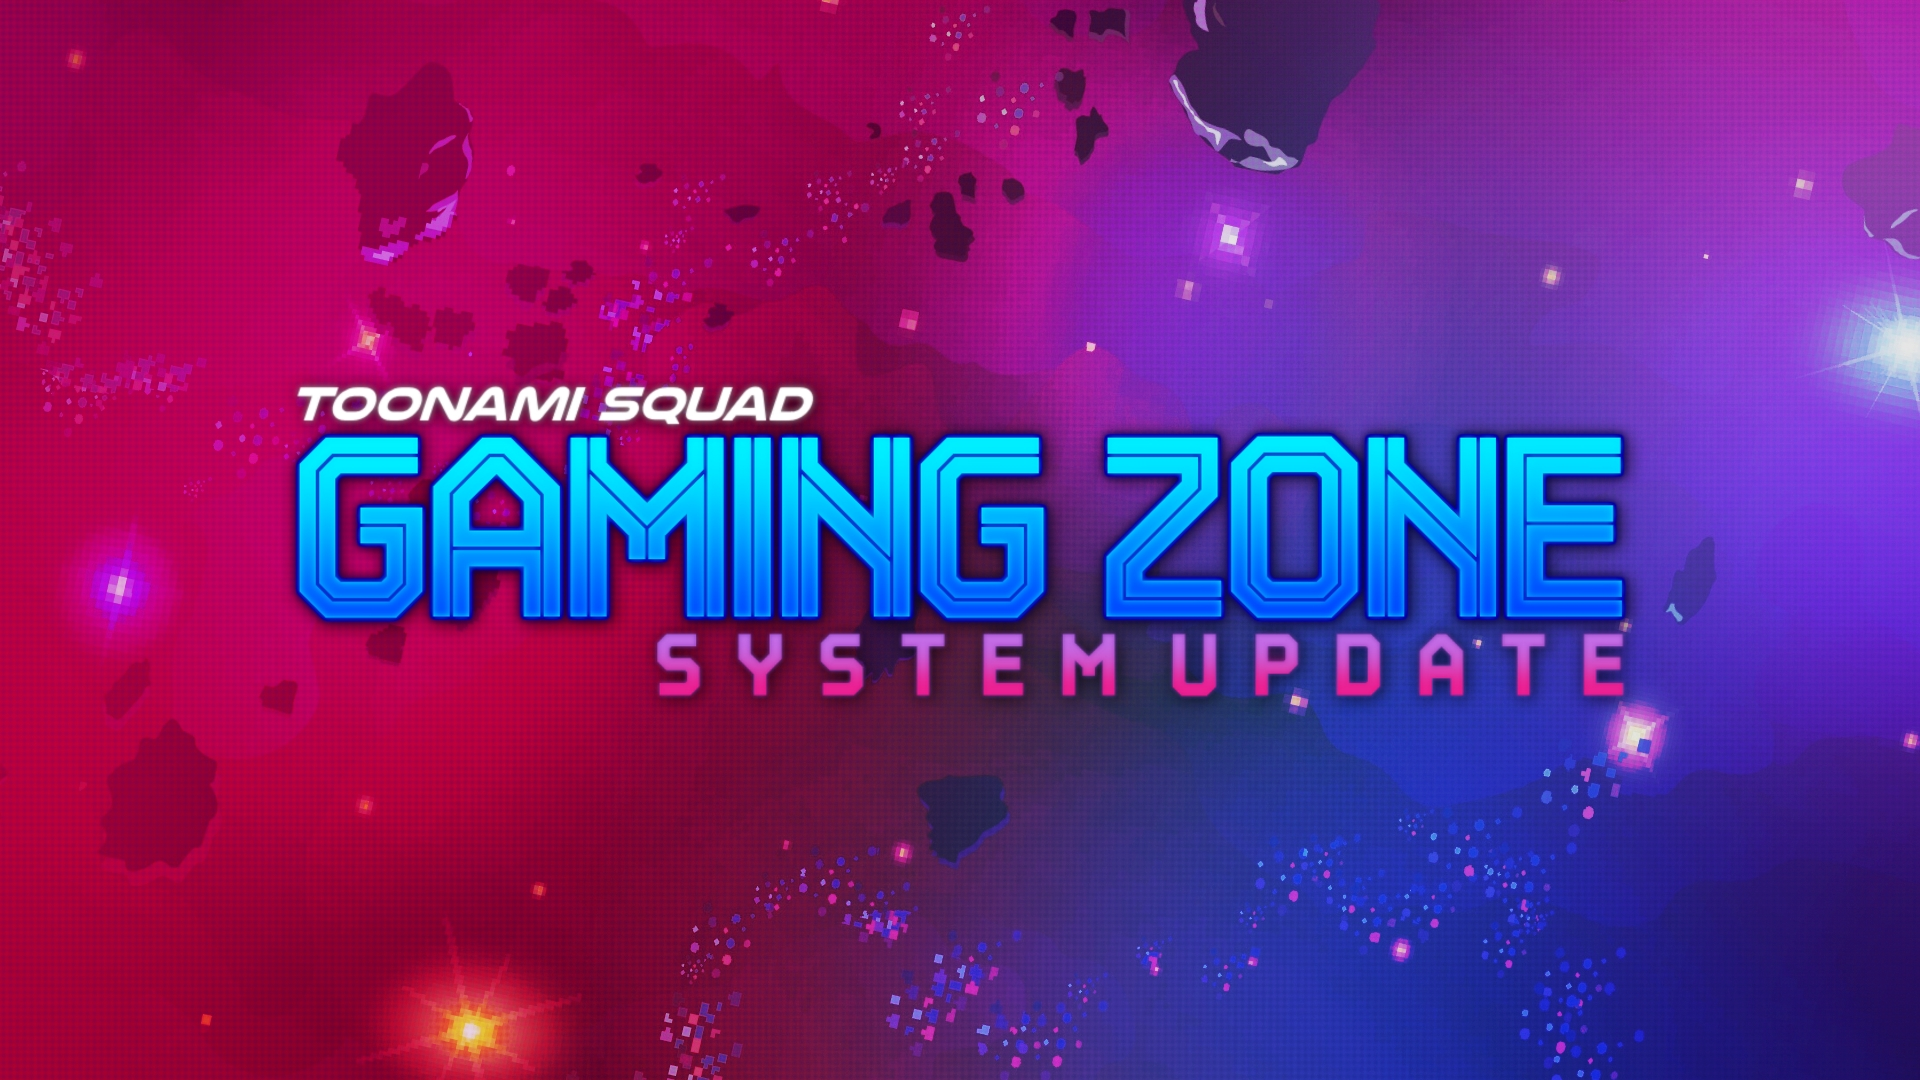 Toonami Squad Gaming Zone System Update 5/3